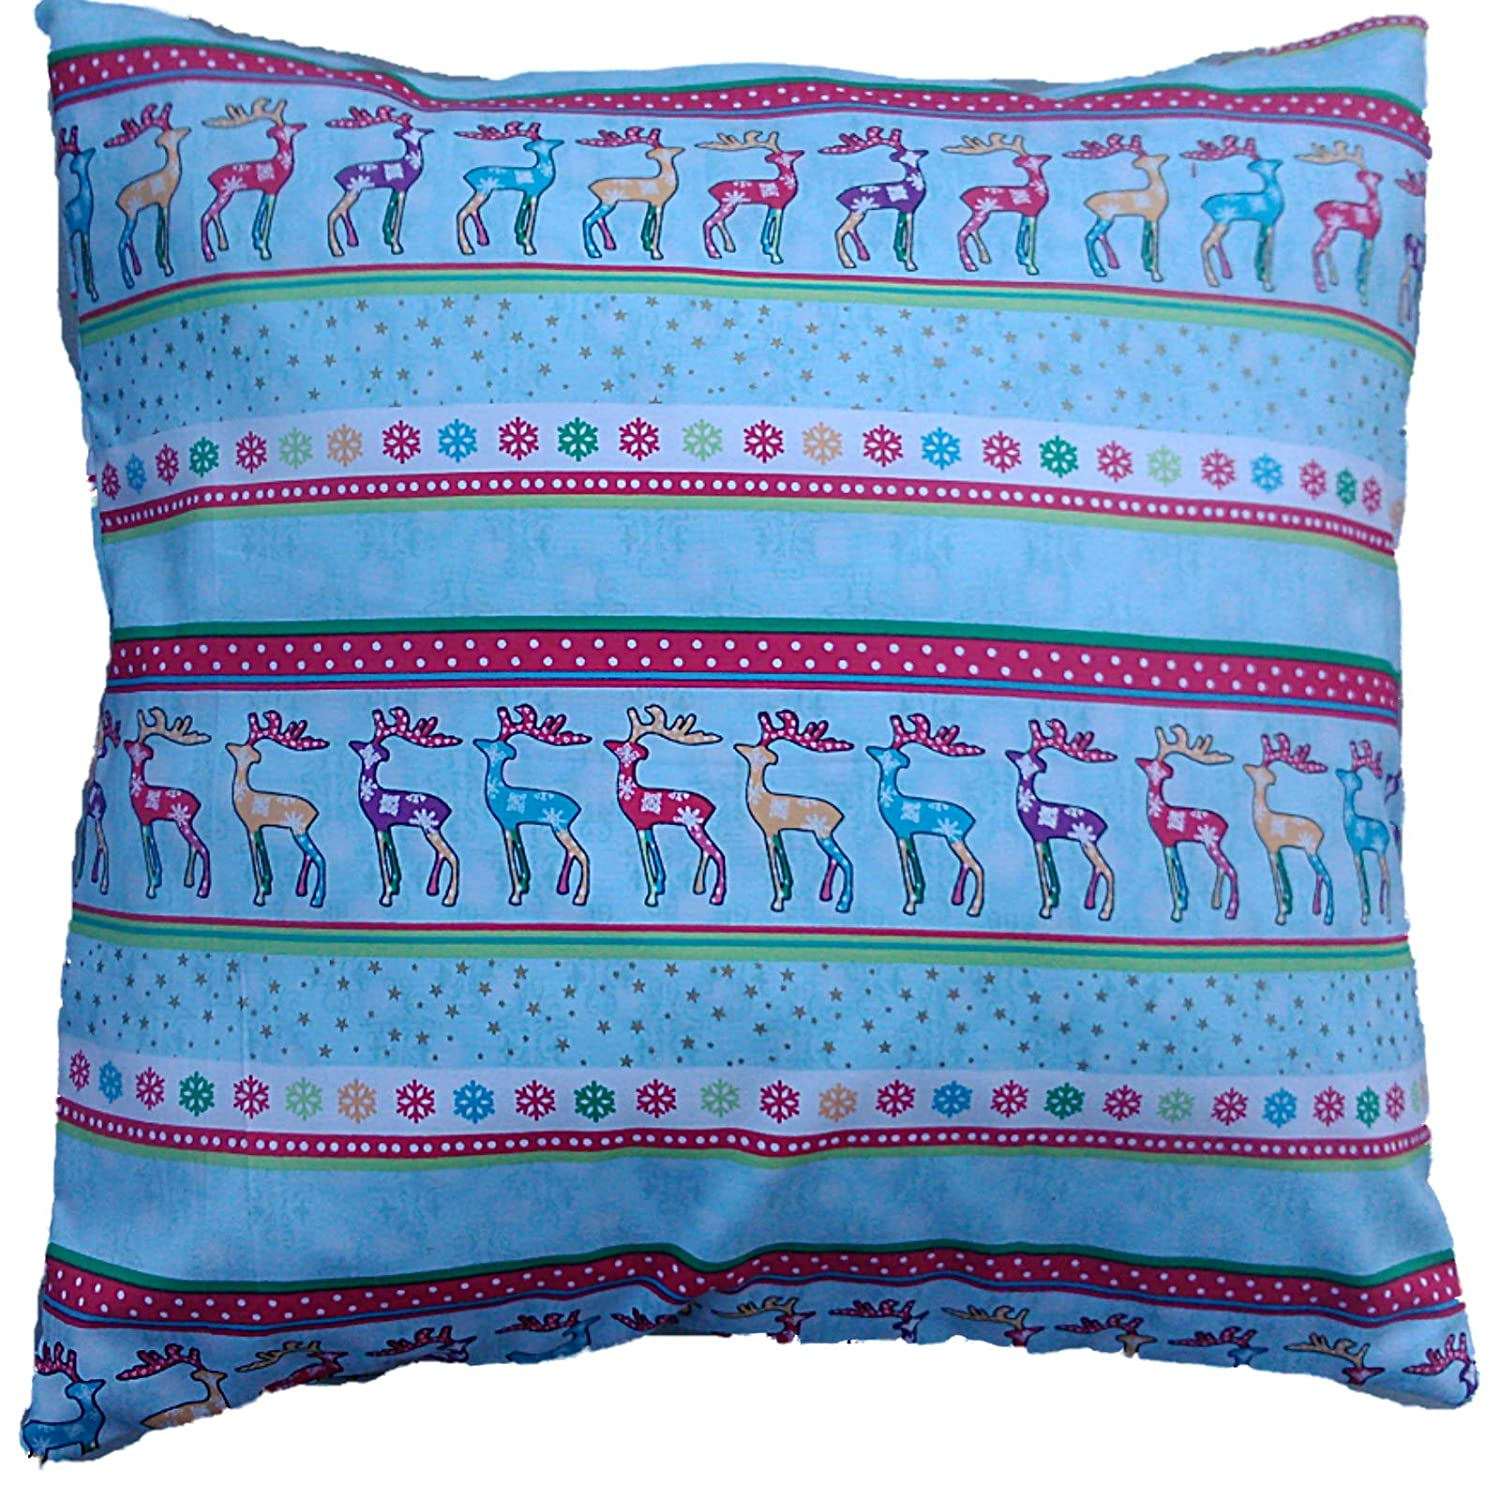 Christmas Snowflake and Reindeers Cushion Cover Size 16' x 16'